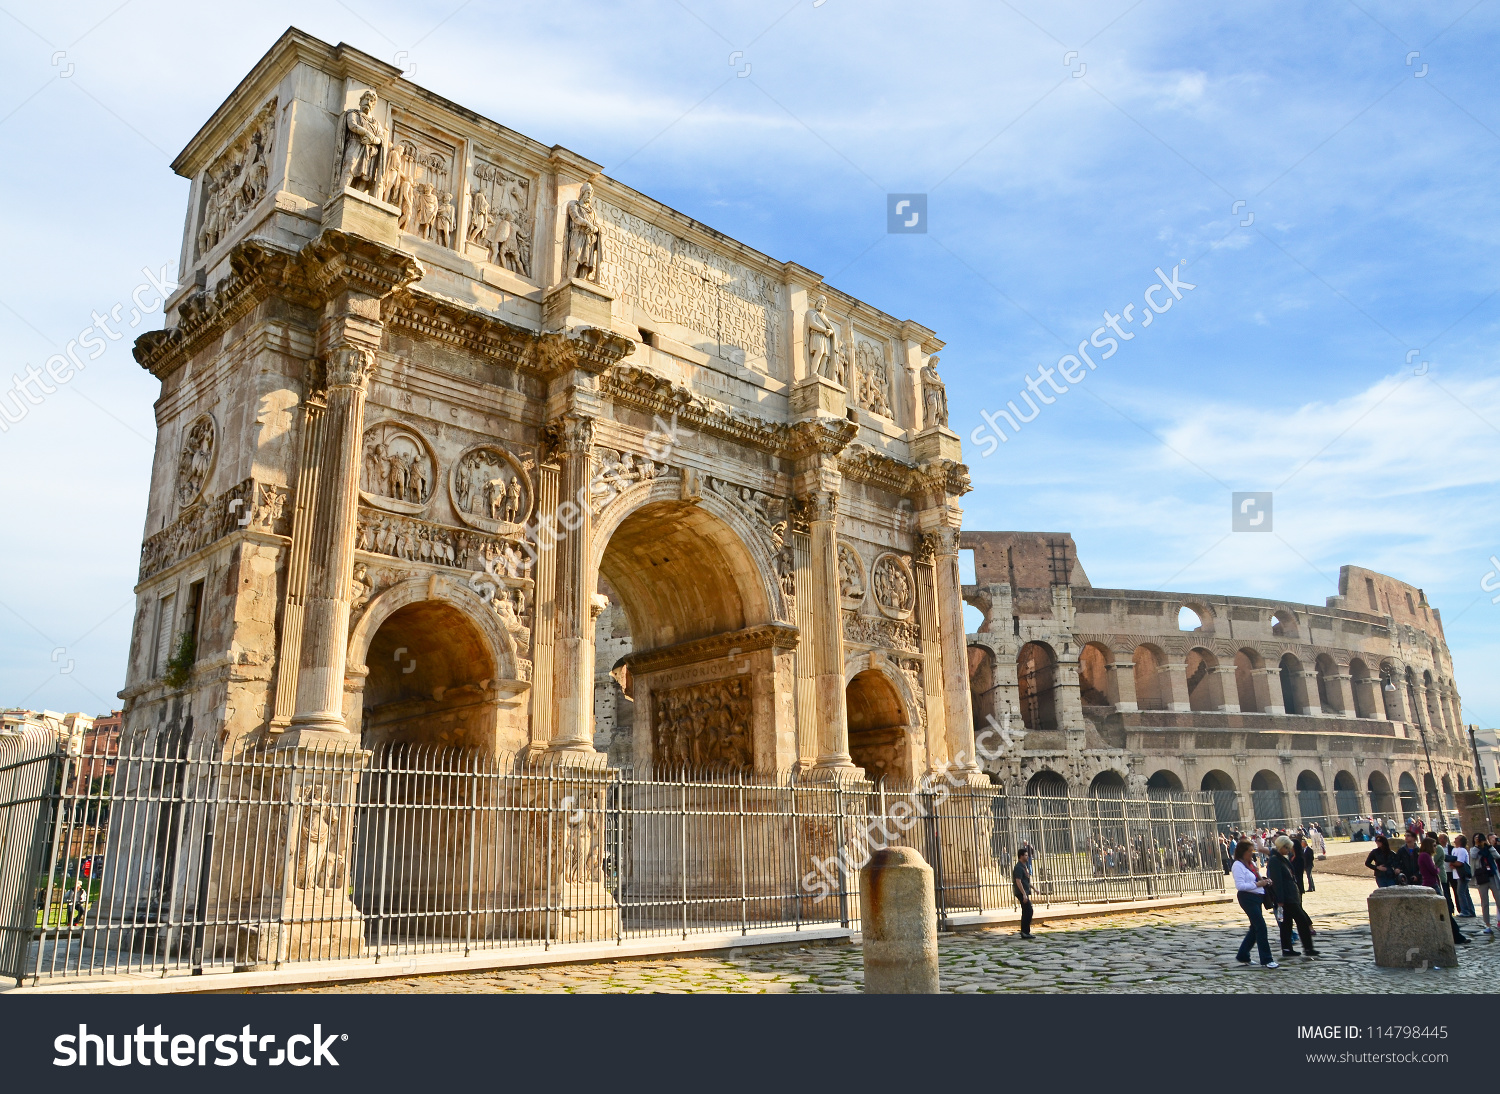 Arch of constantine clipart #1